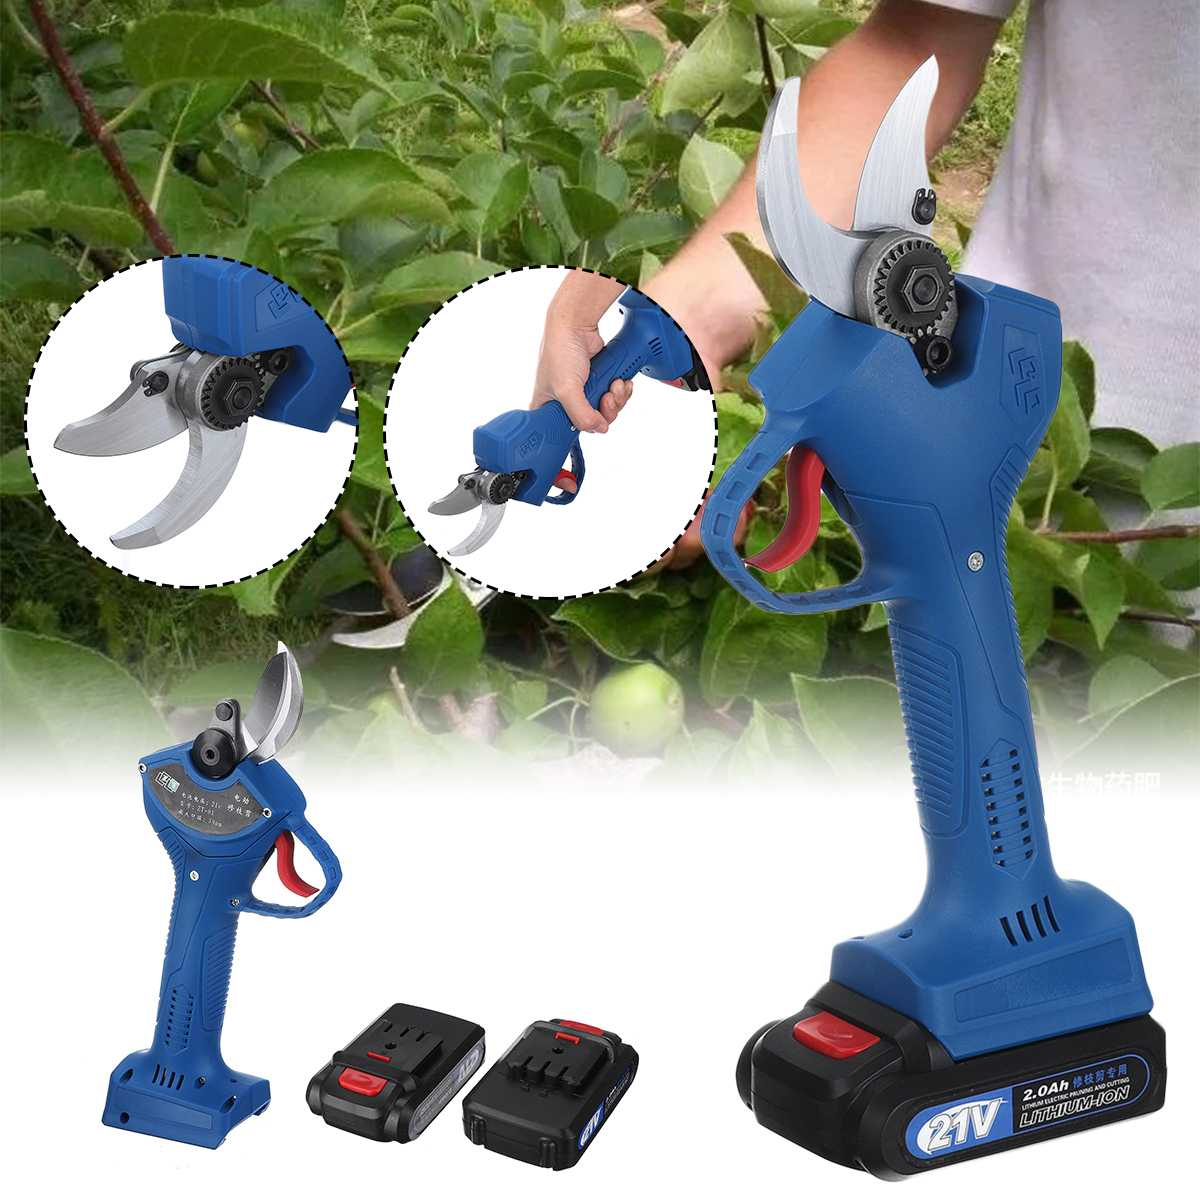 21V Electric Pruning Scissors 30mm Pruning Shears With 2 Lithium Battery Garden Pruner Branch Cutter